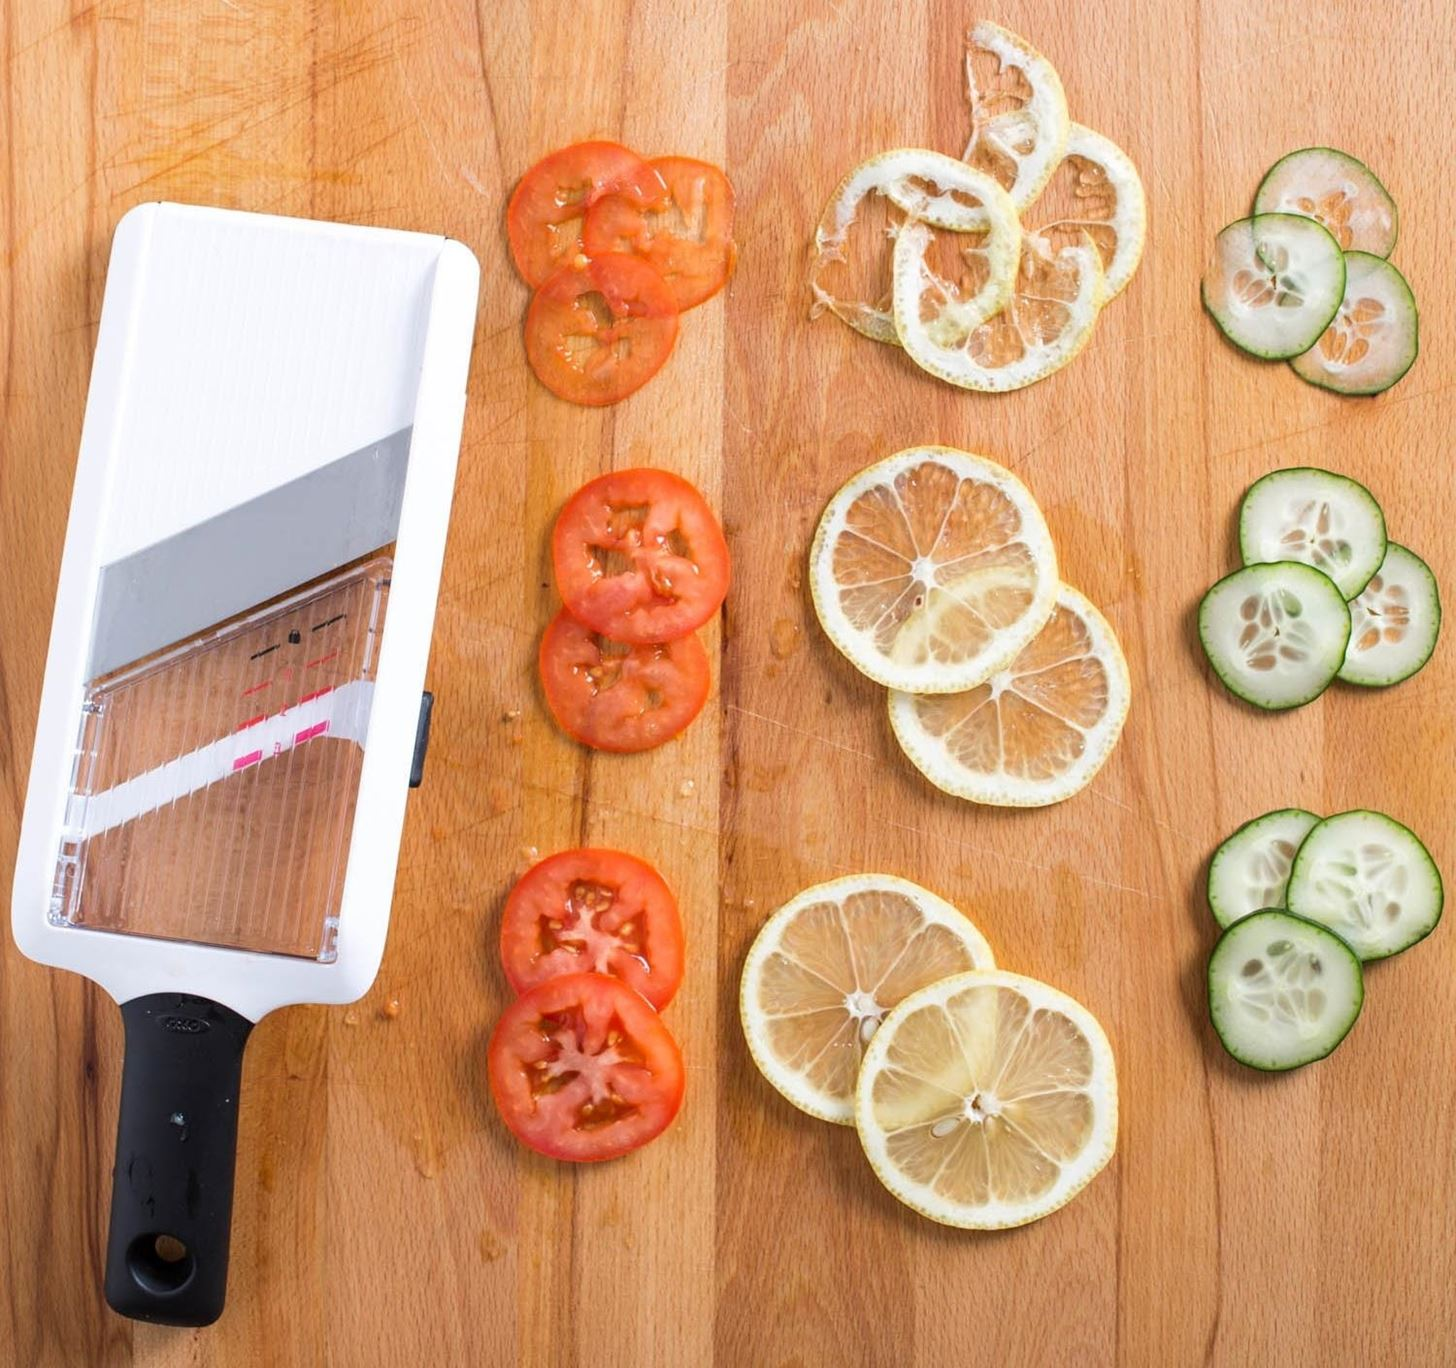 Food Tool Friday: Ditch Your Mandoline for a Handheld Slicer Instead